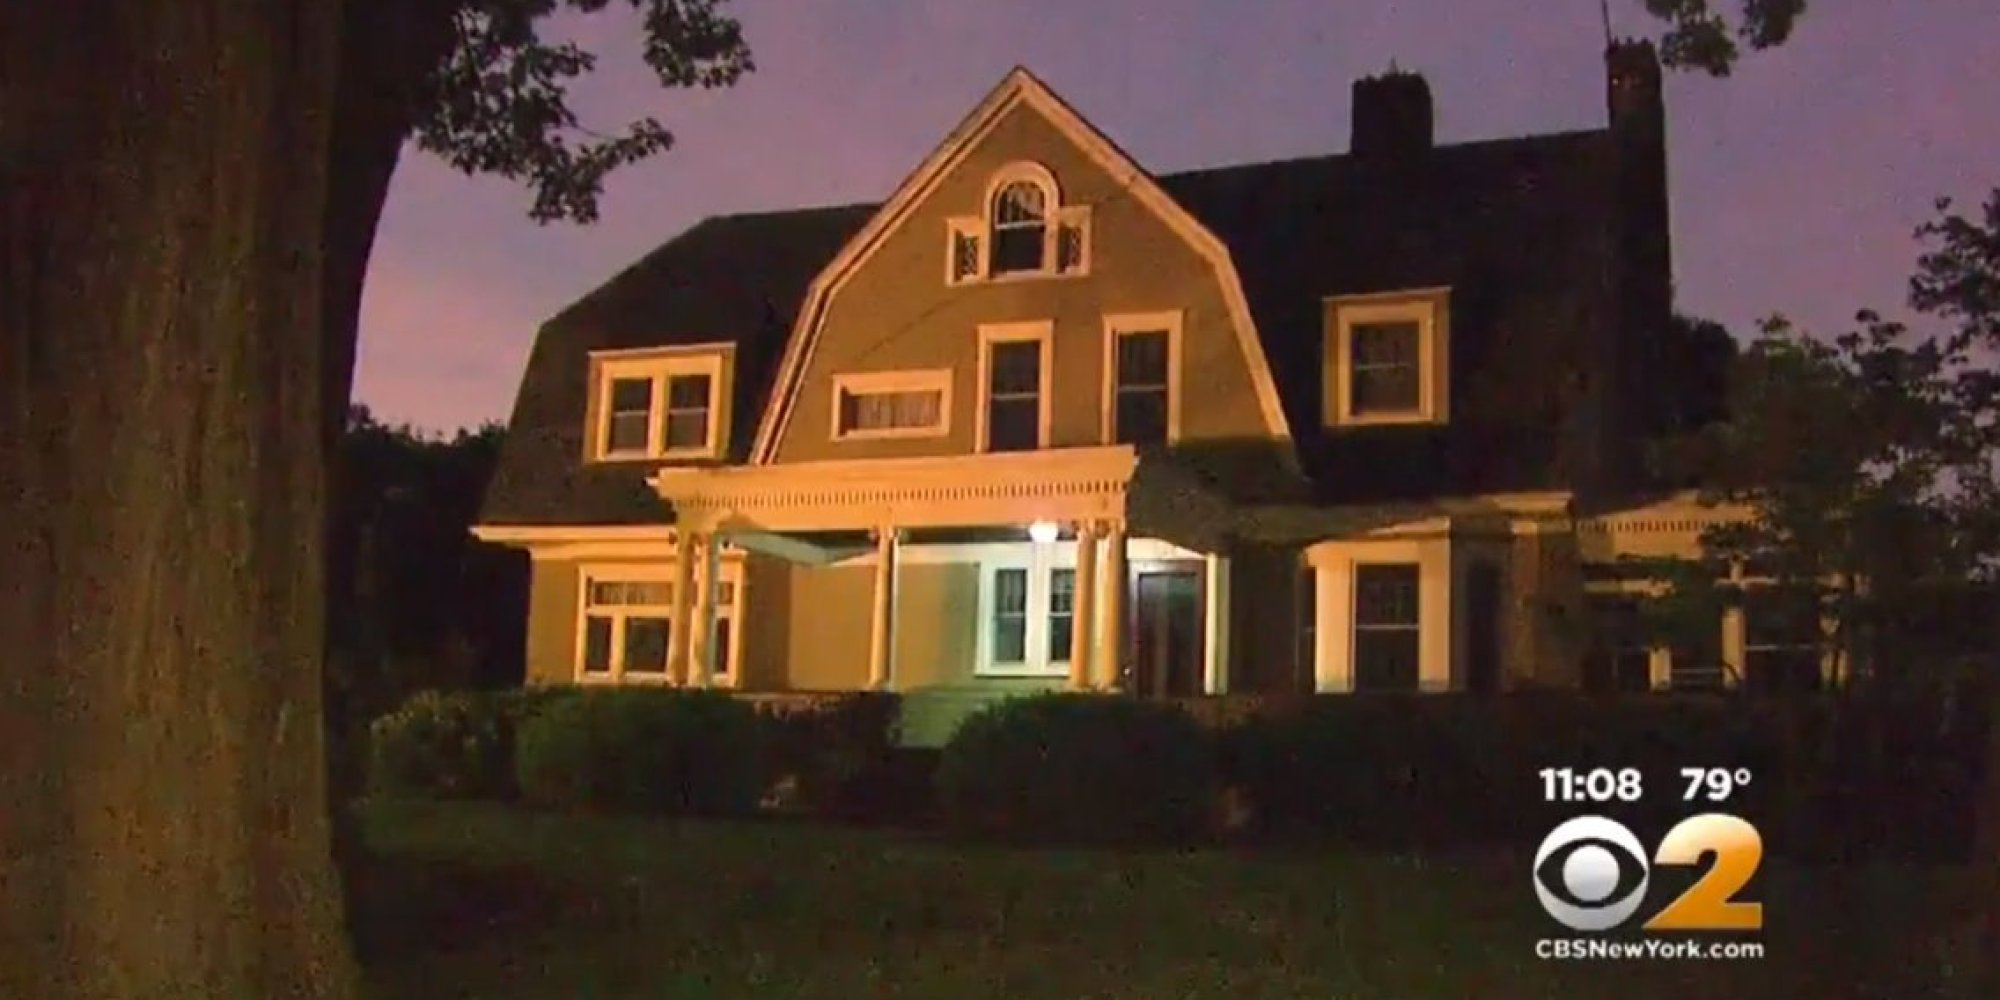 Family Flees New House Over Creepy Letters From The Watcher